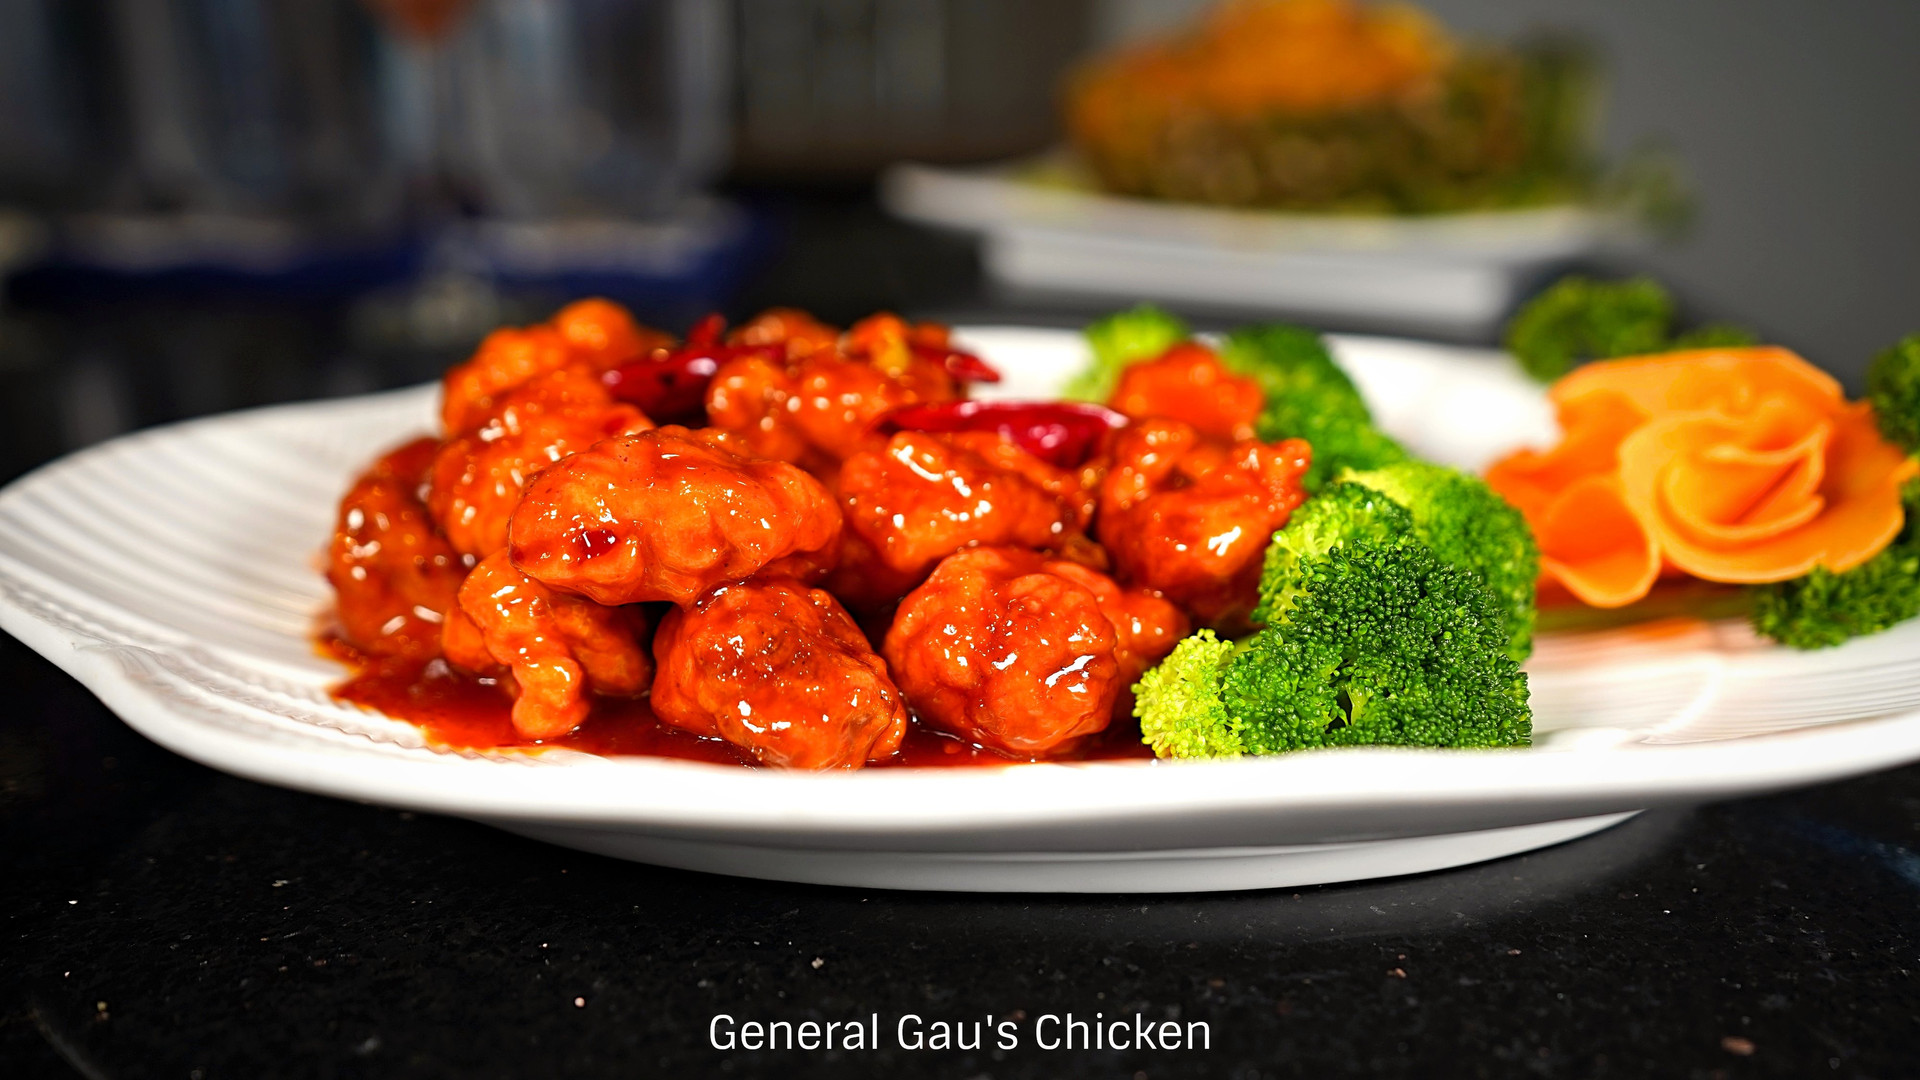 general gau's chicken.jpg